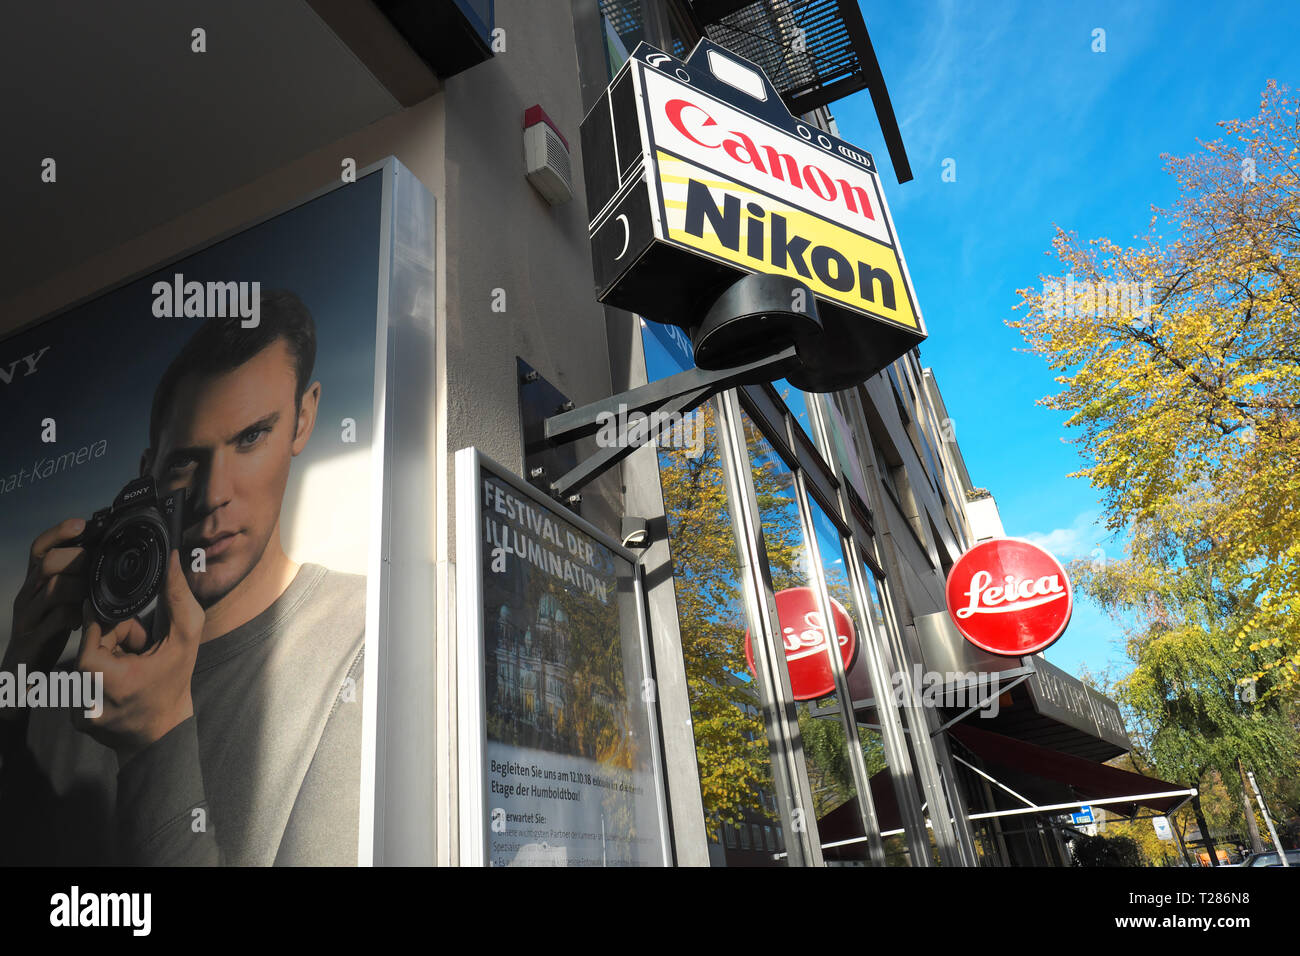 Camera Shop with adverts for Canon Nikon Leica in Berlin Germany - Stock Image